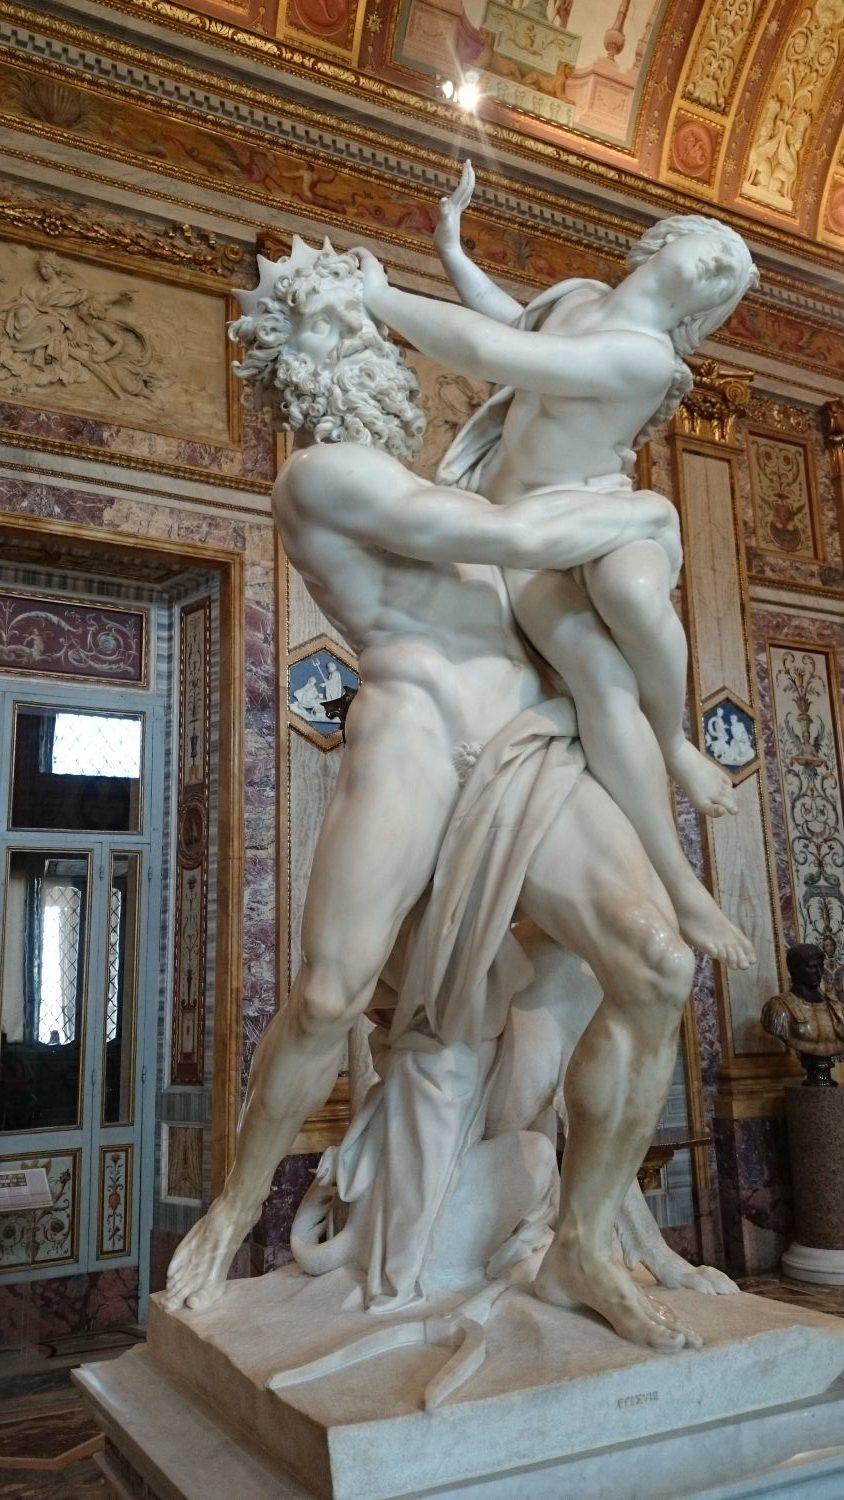 The Rape of Proserpine by Bernini